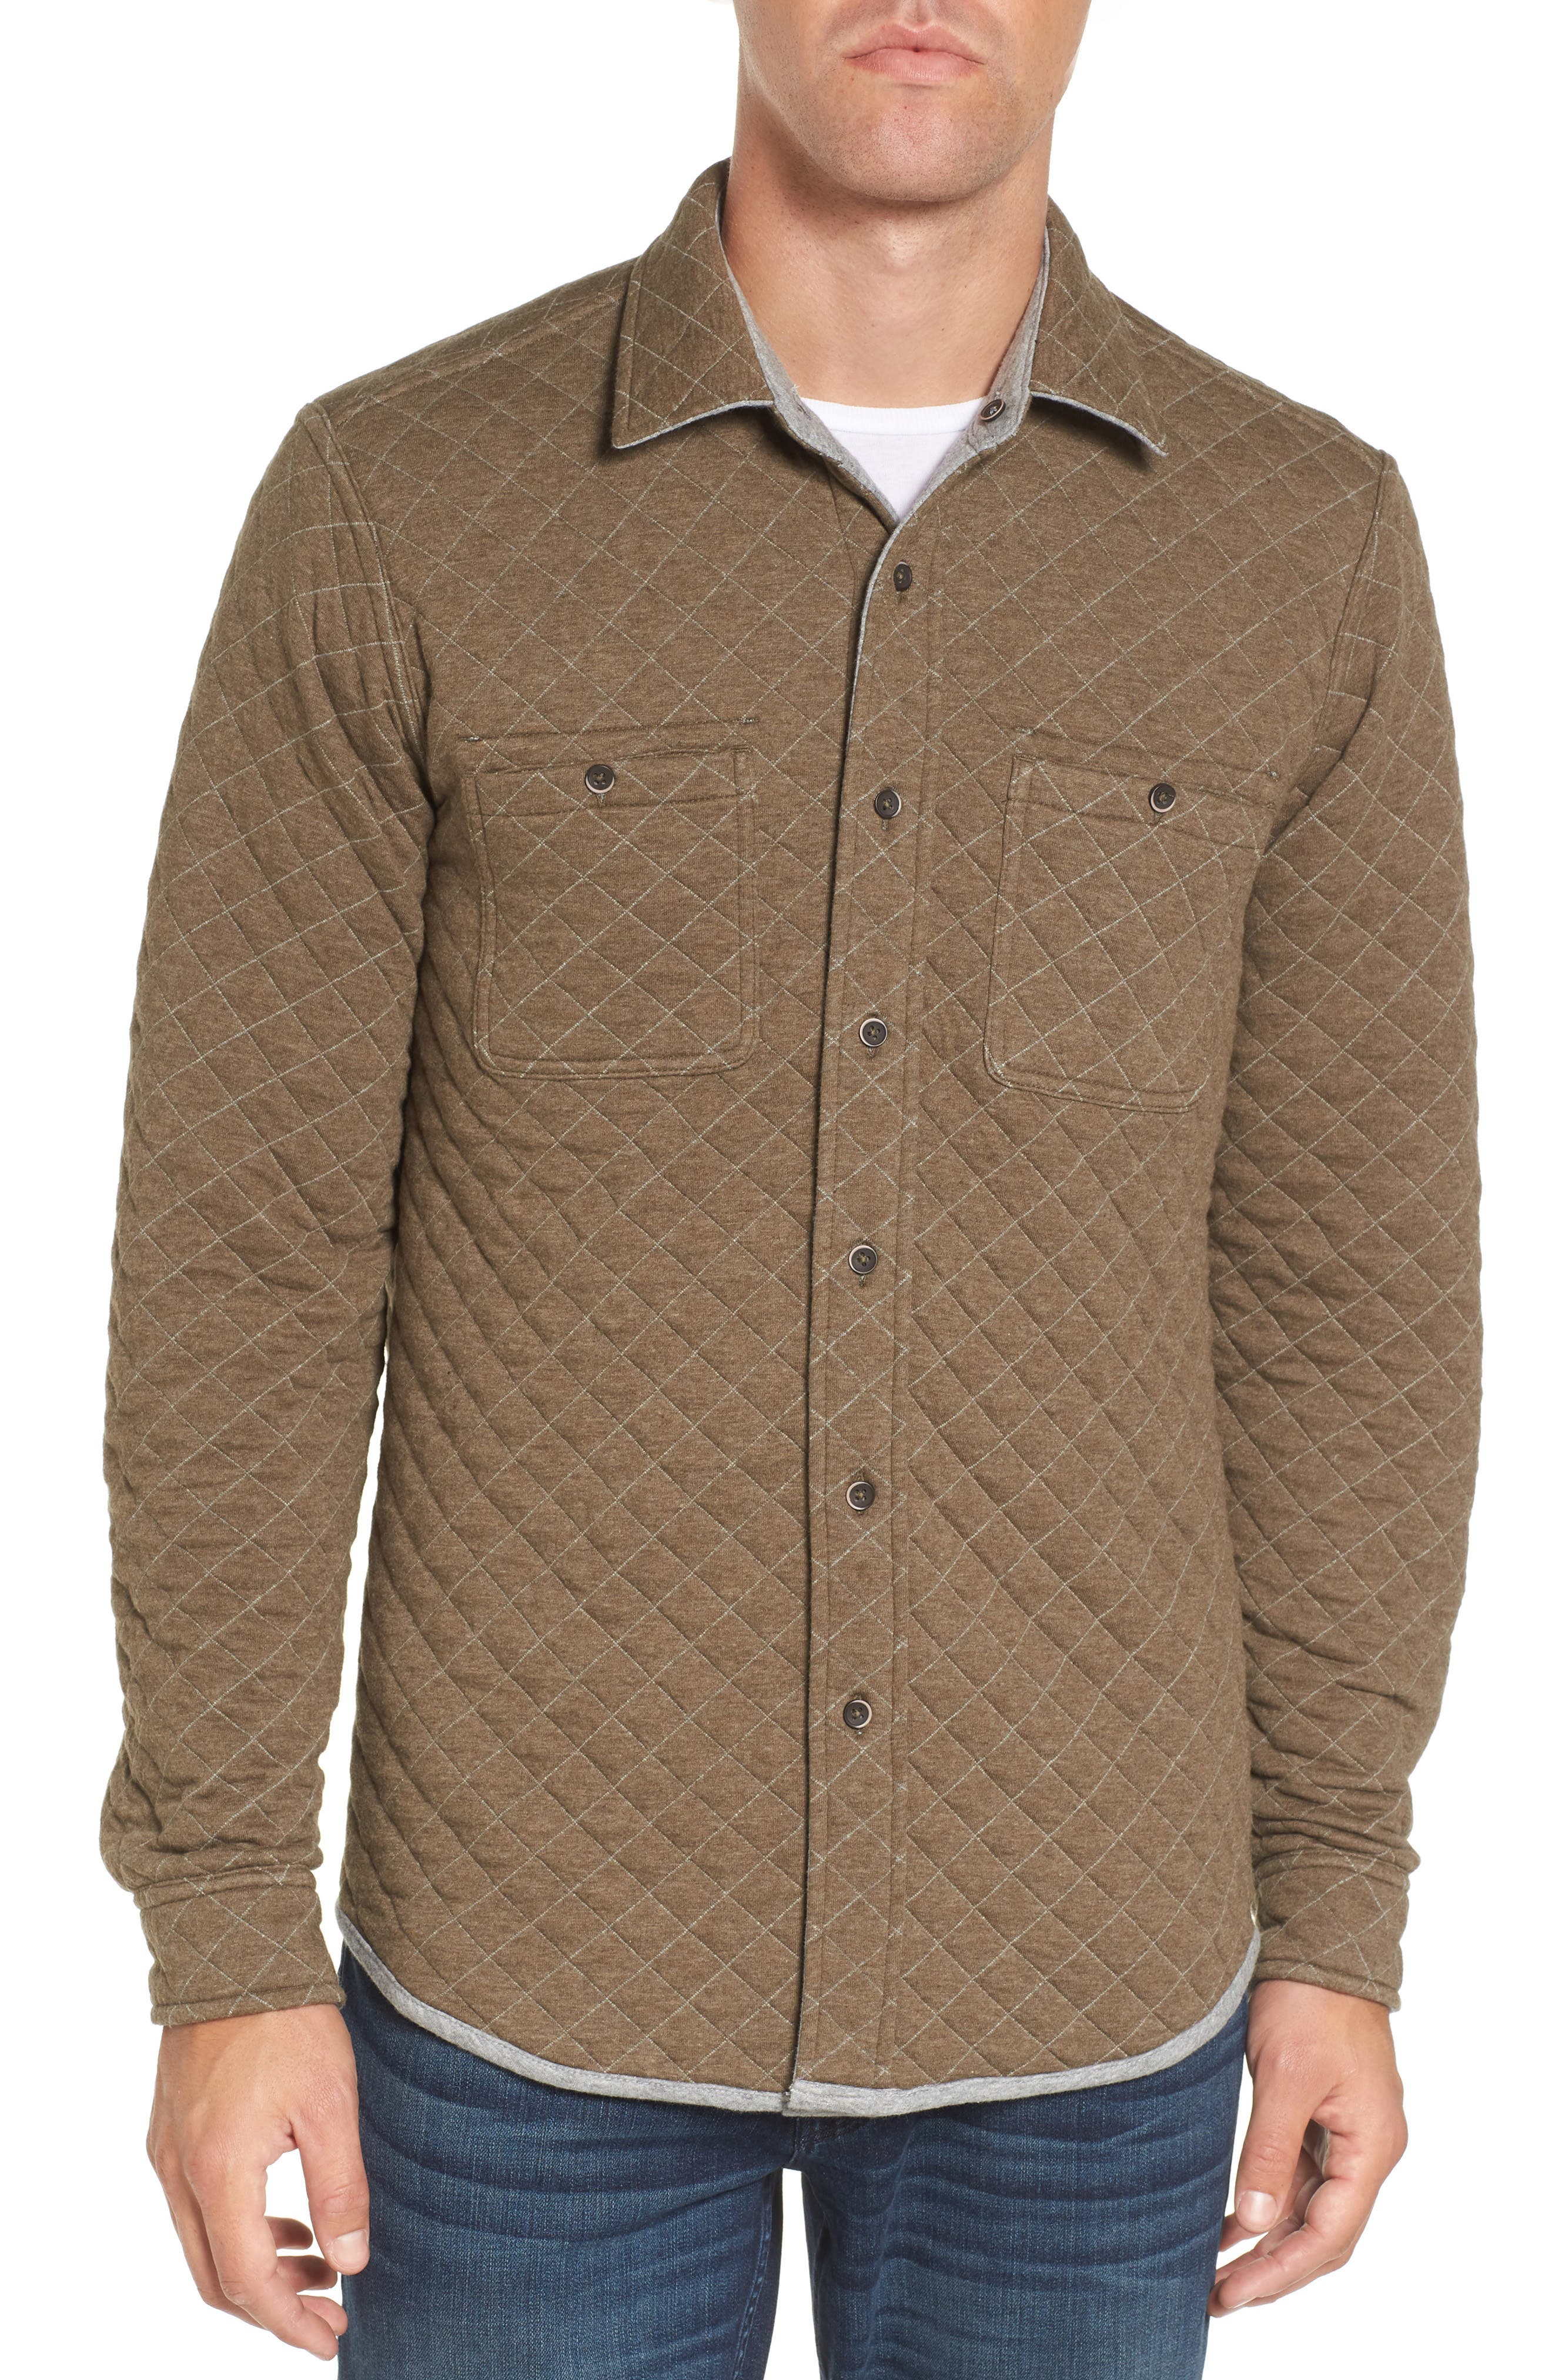 Reversible Double-Face Quilted Shirt,                             Alternate thumbnail 4, color,                             Med Grey Htr/ Army Htr Quilted